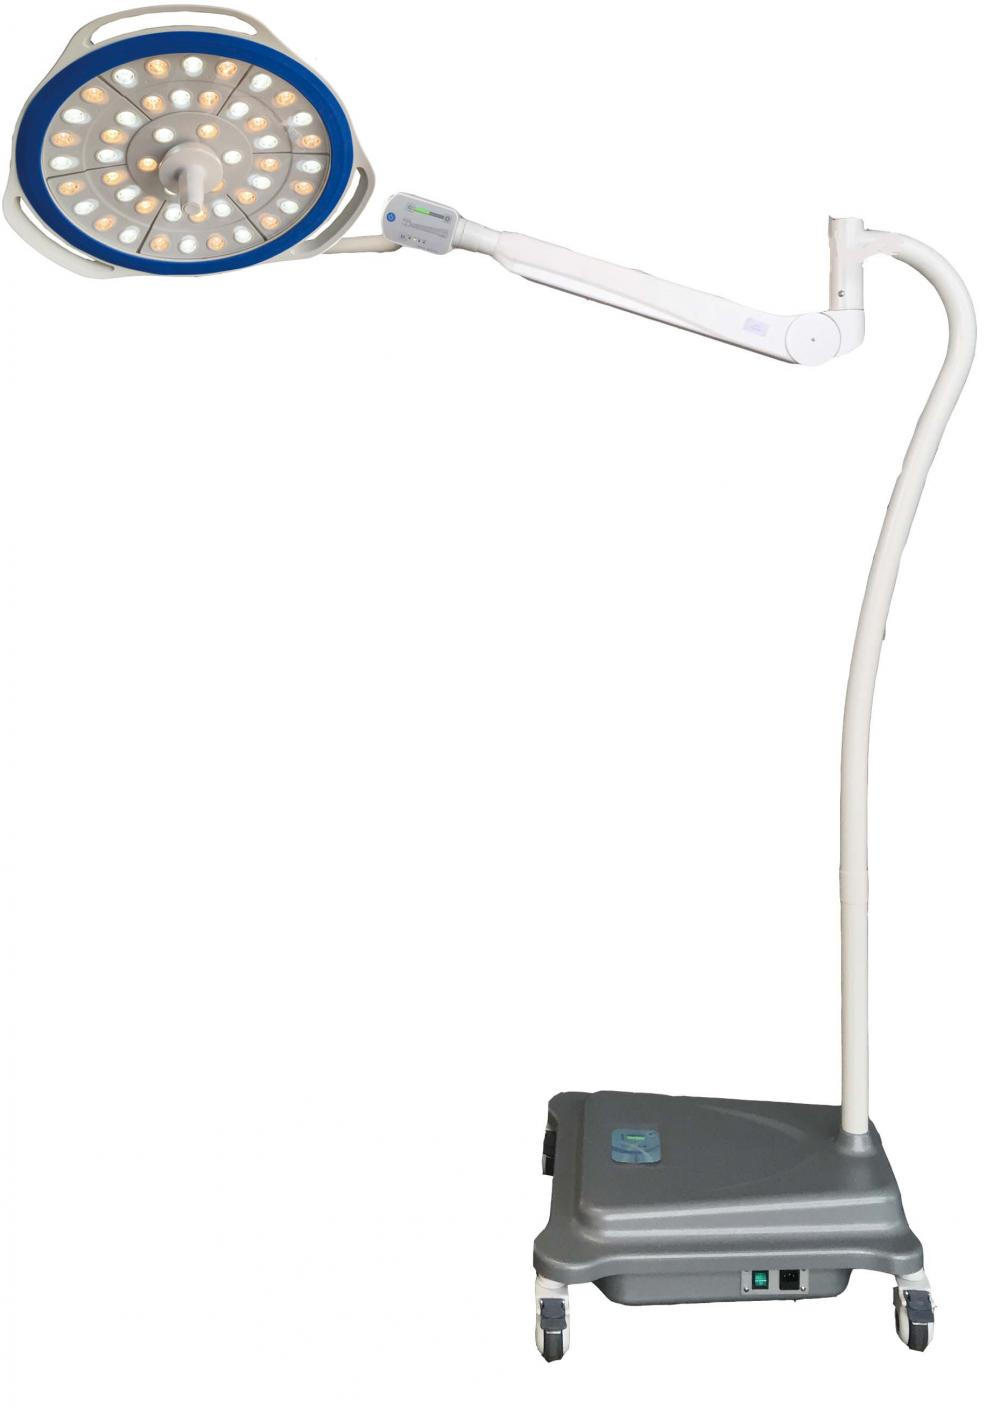 Mobile LED-Lampe ohne Schatten